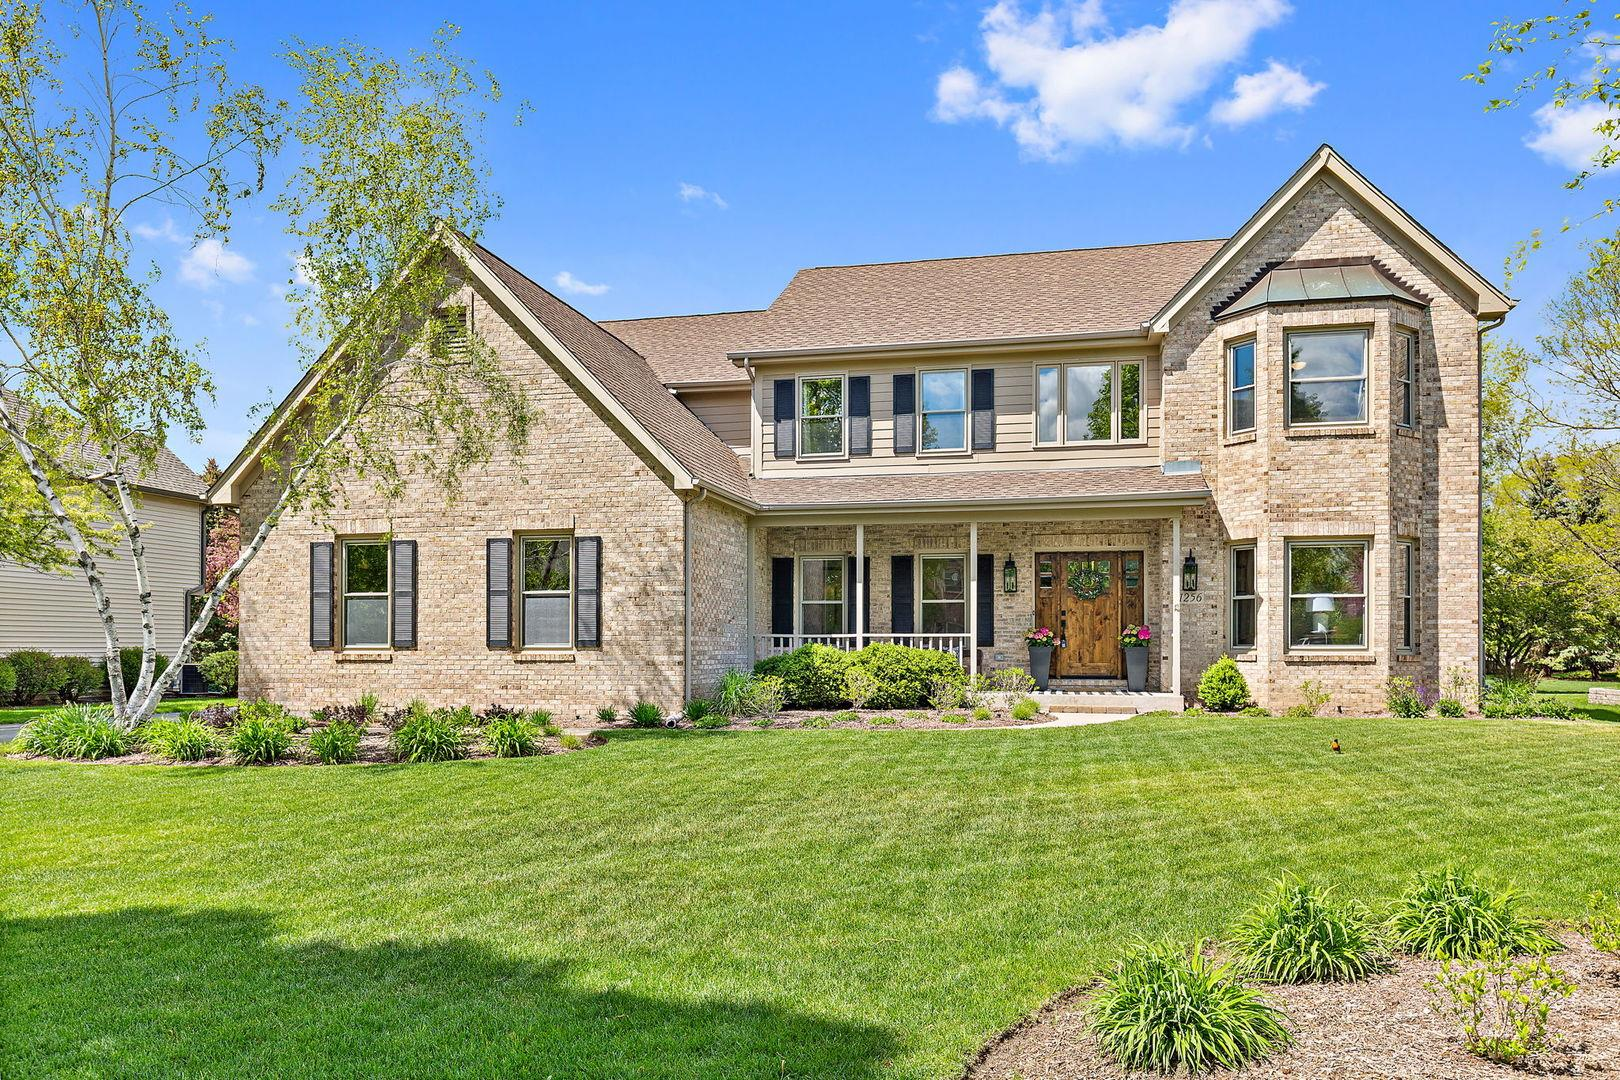 1256 Williamsburg Lane, Crystal Lake, IL 60014 - #: 11071527